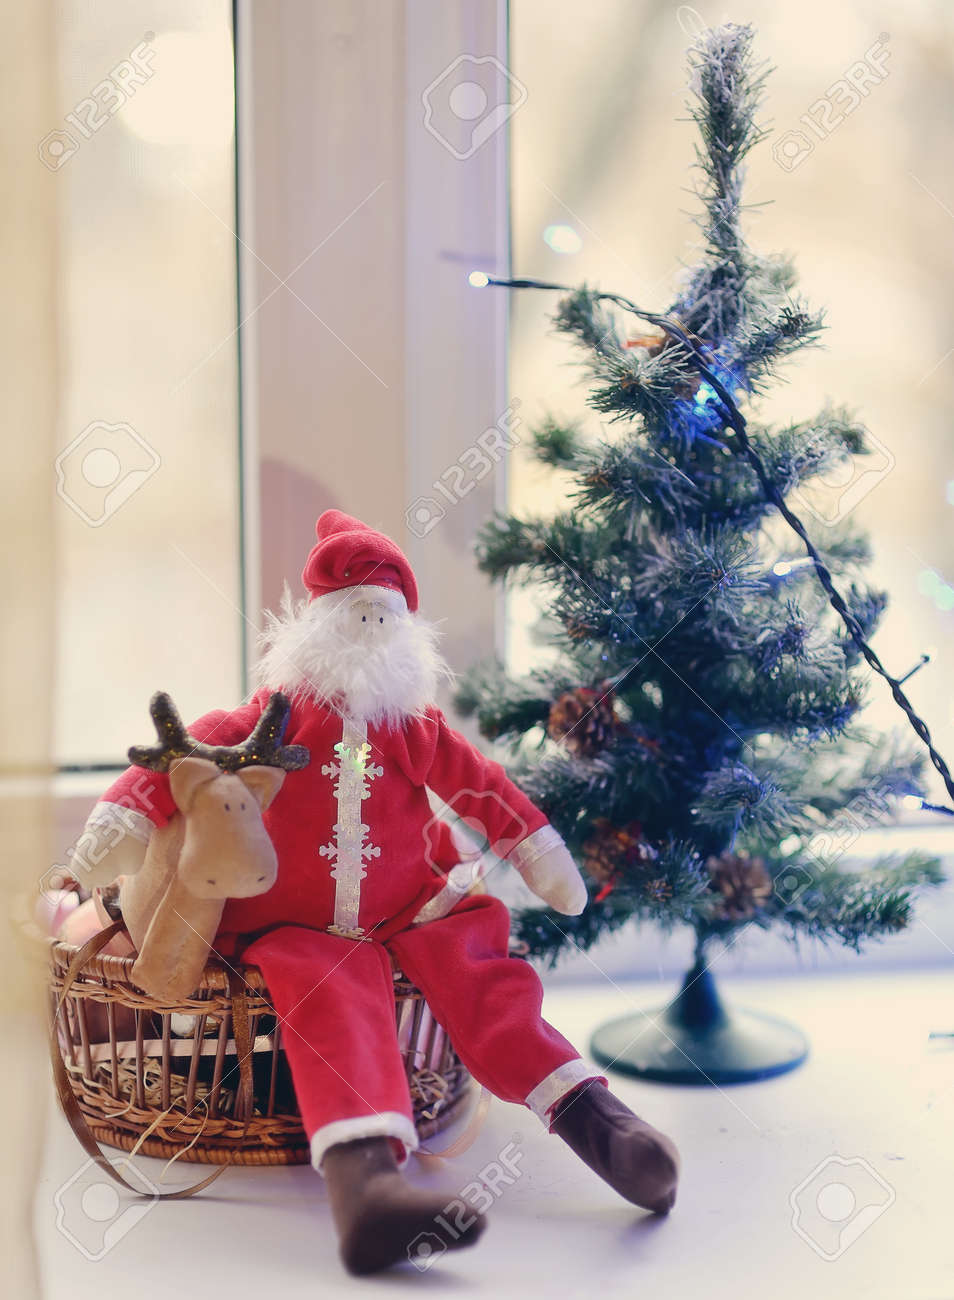 Christmas tree decorated with toys under the Christmas tree and Santa Claus with deer Stock Photo - 15959230